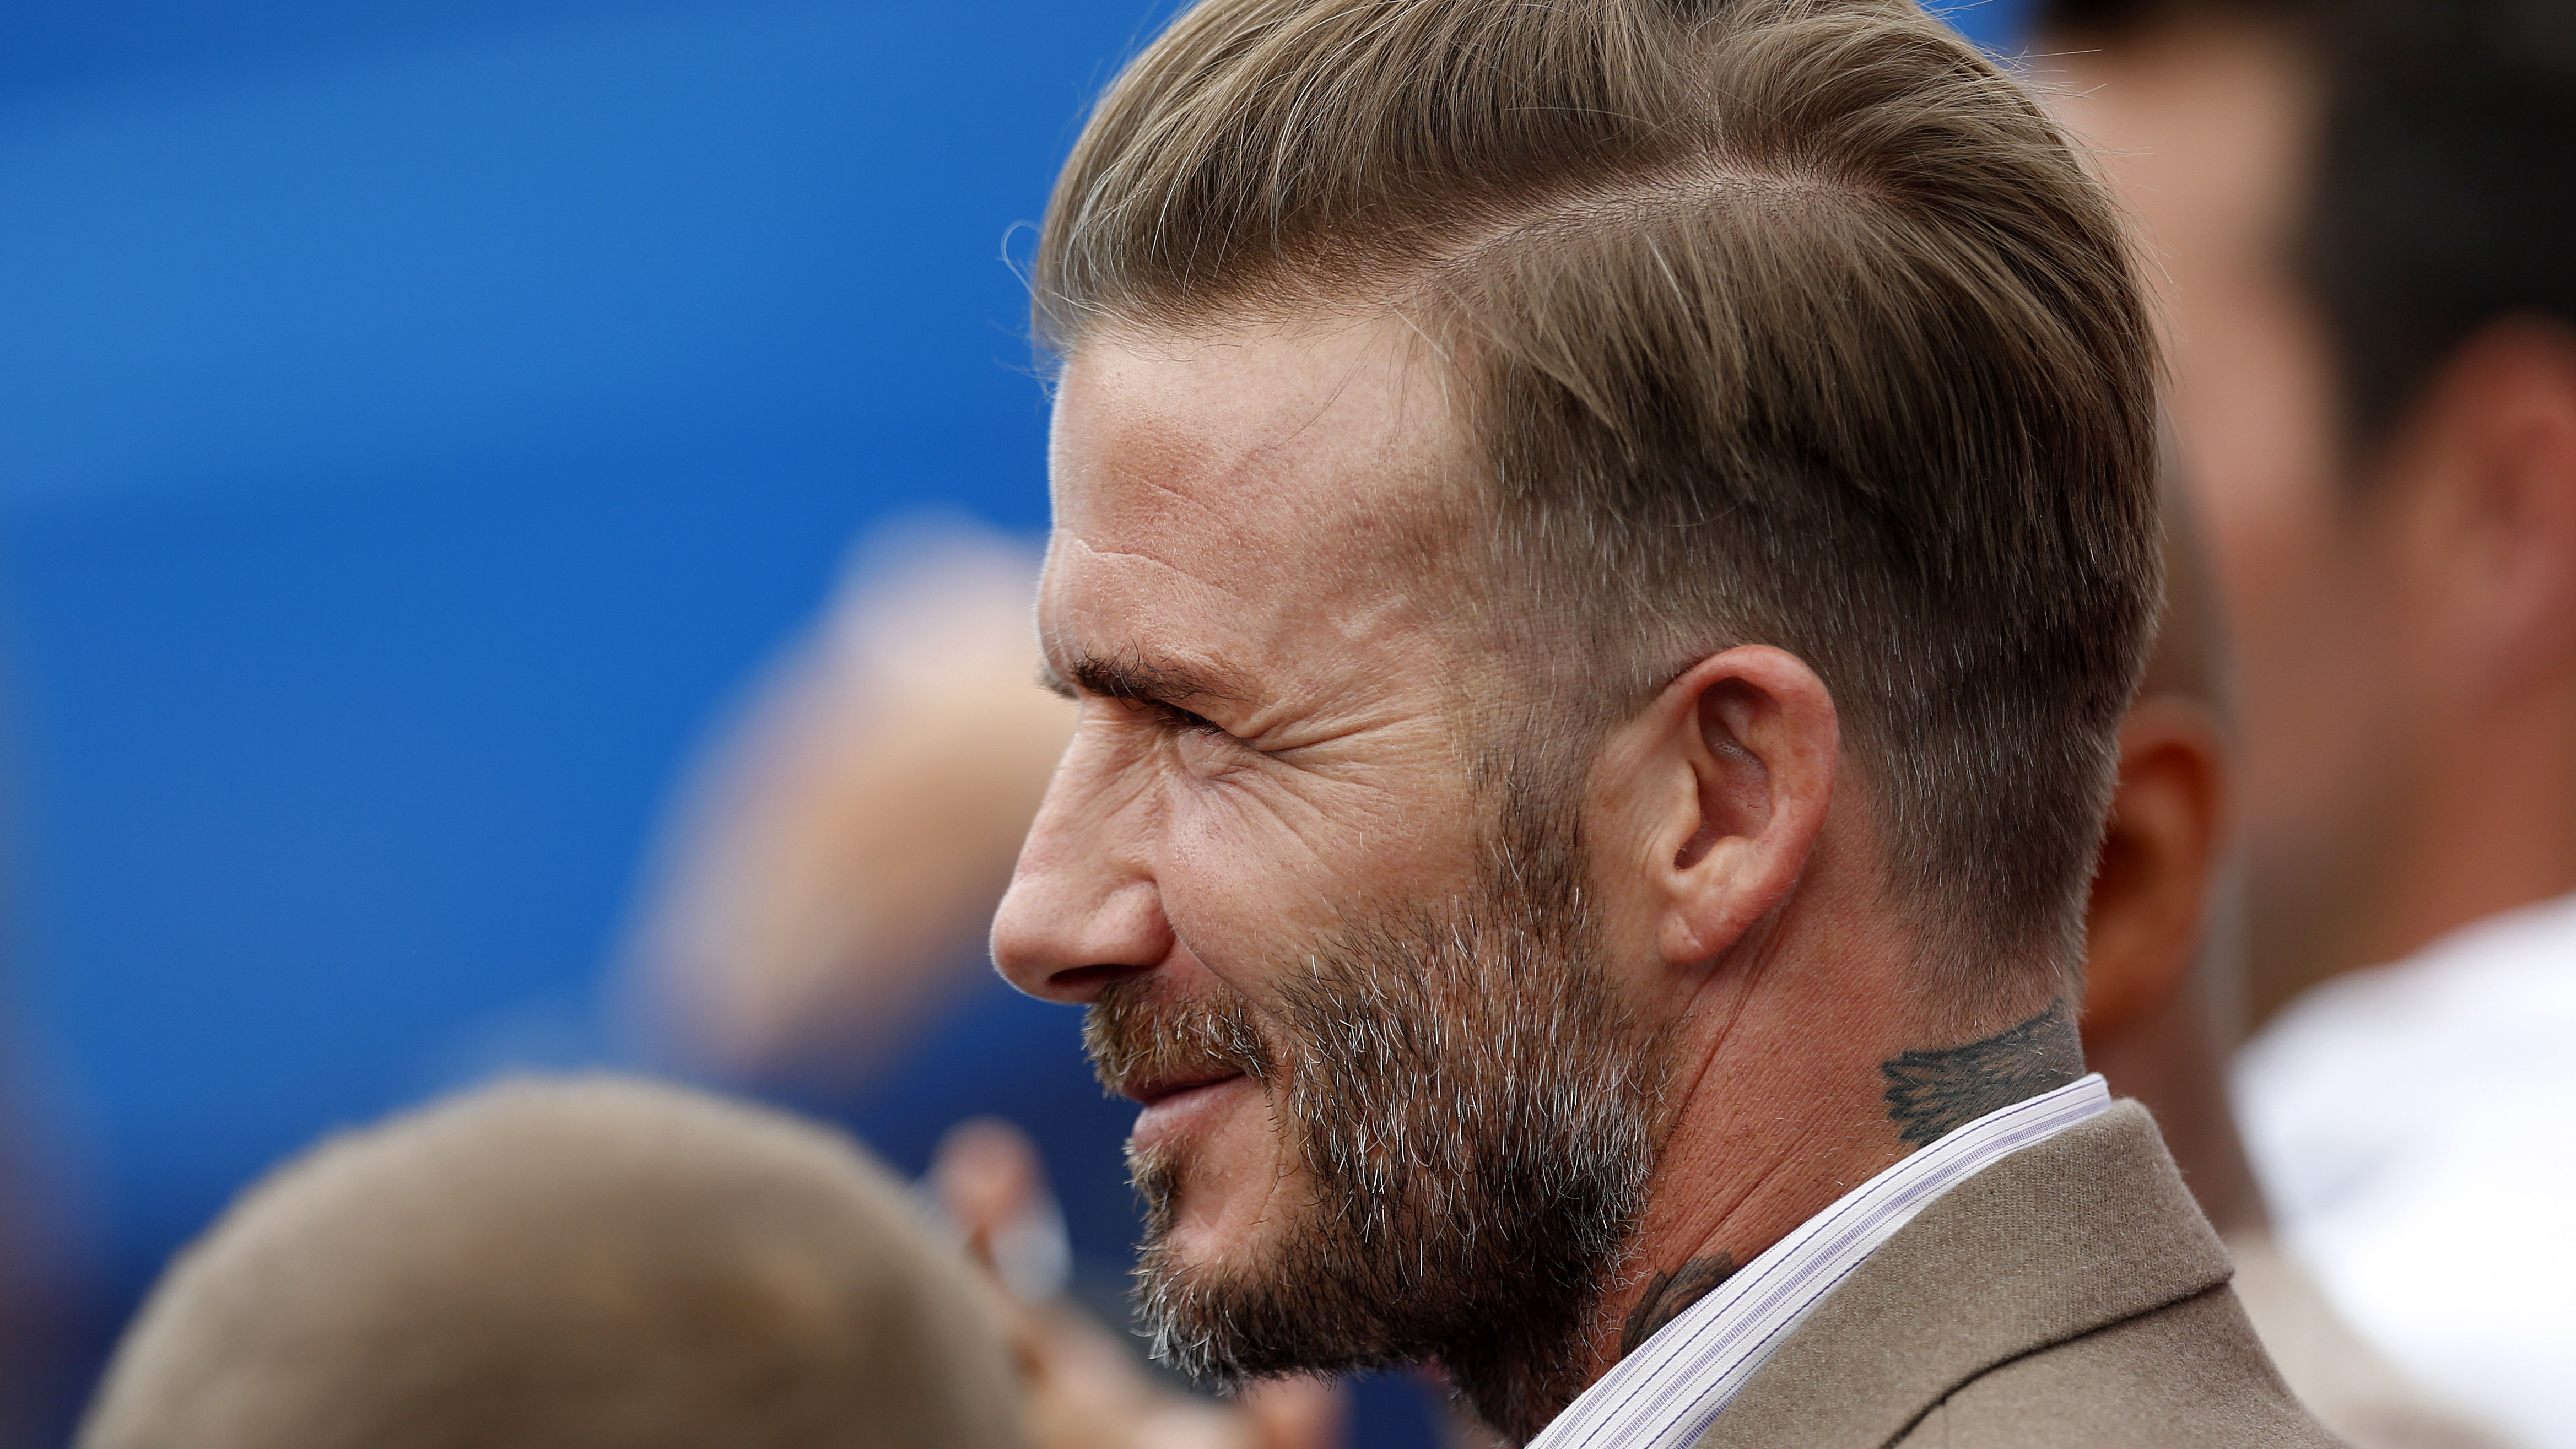 No One Whos Had More Influence On The Hairstyles Of Young British Lads Over Past 25 Years Than Football Legend Turned Style Icon David Beckham